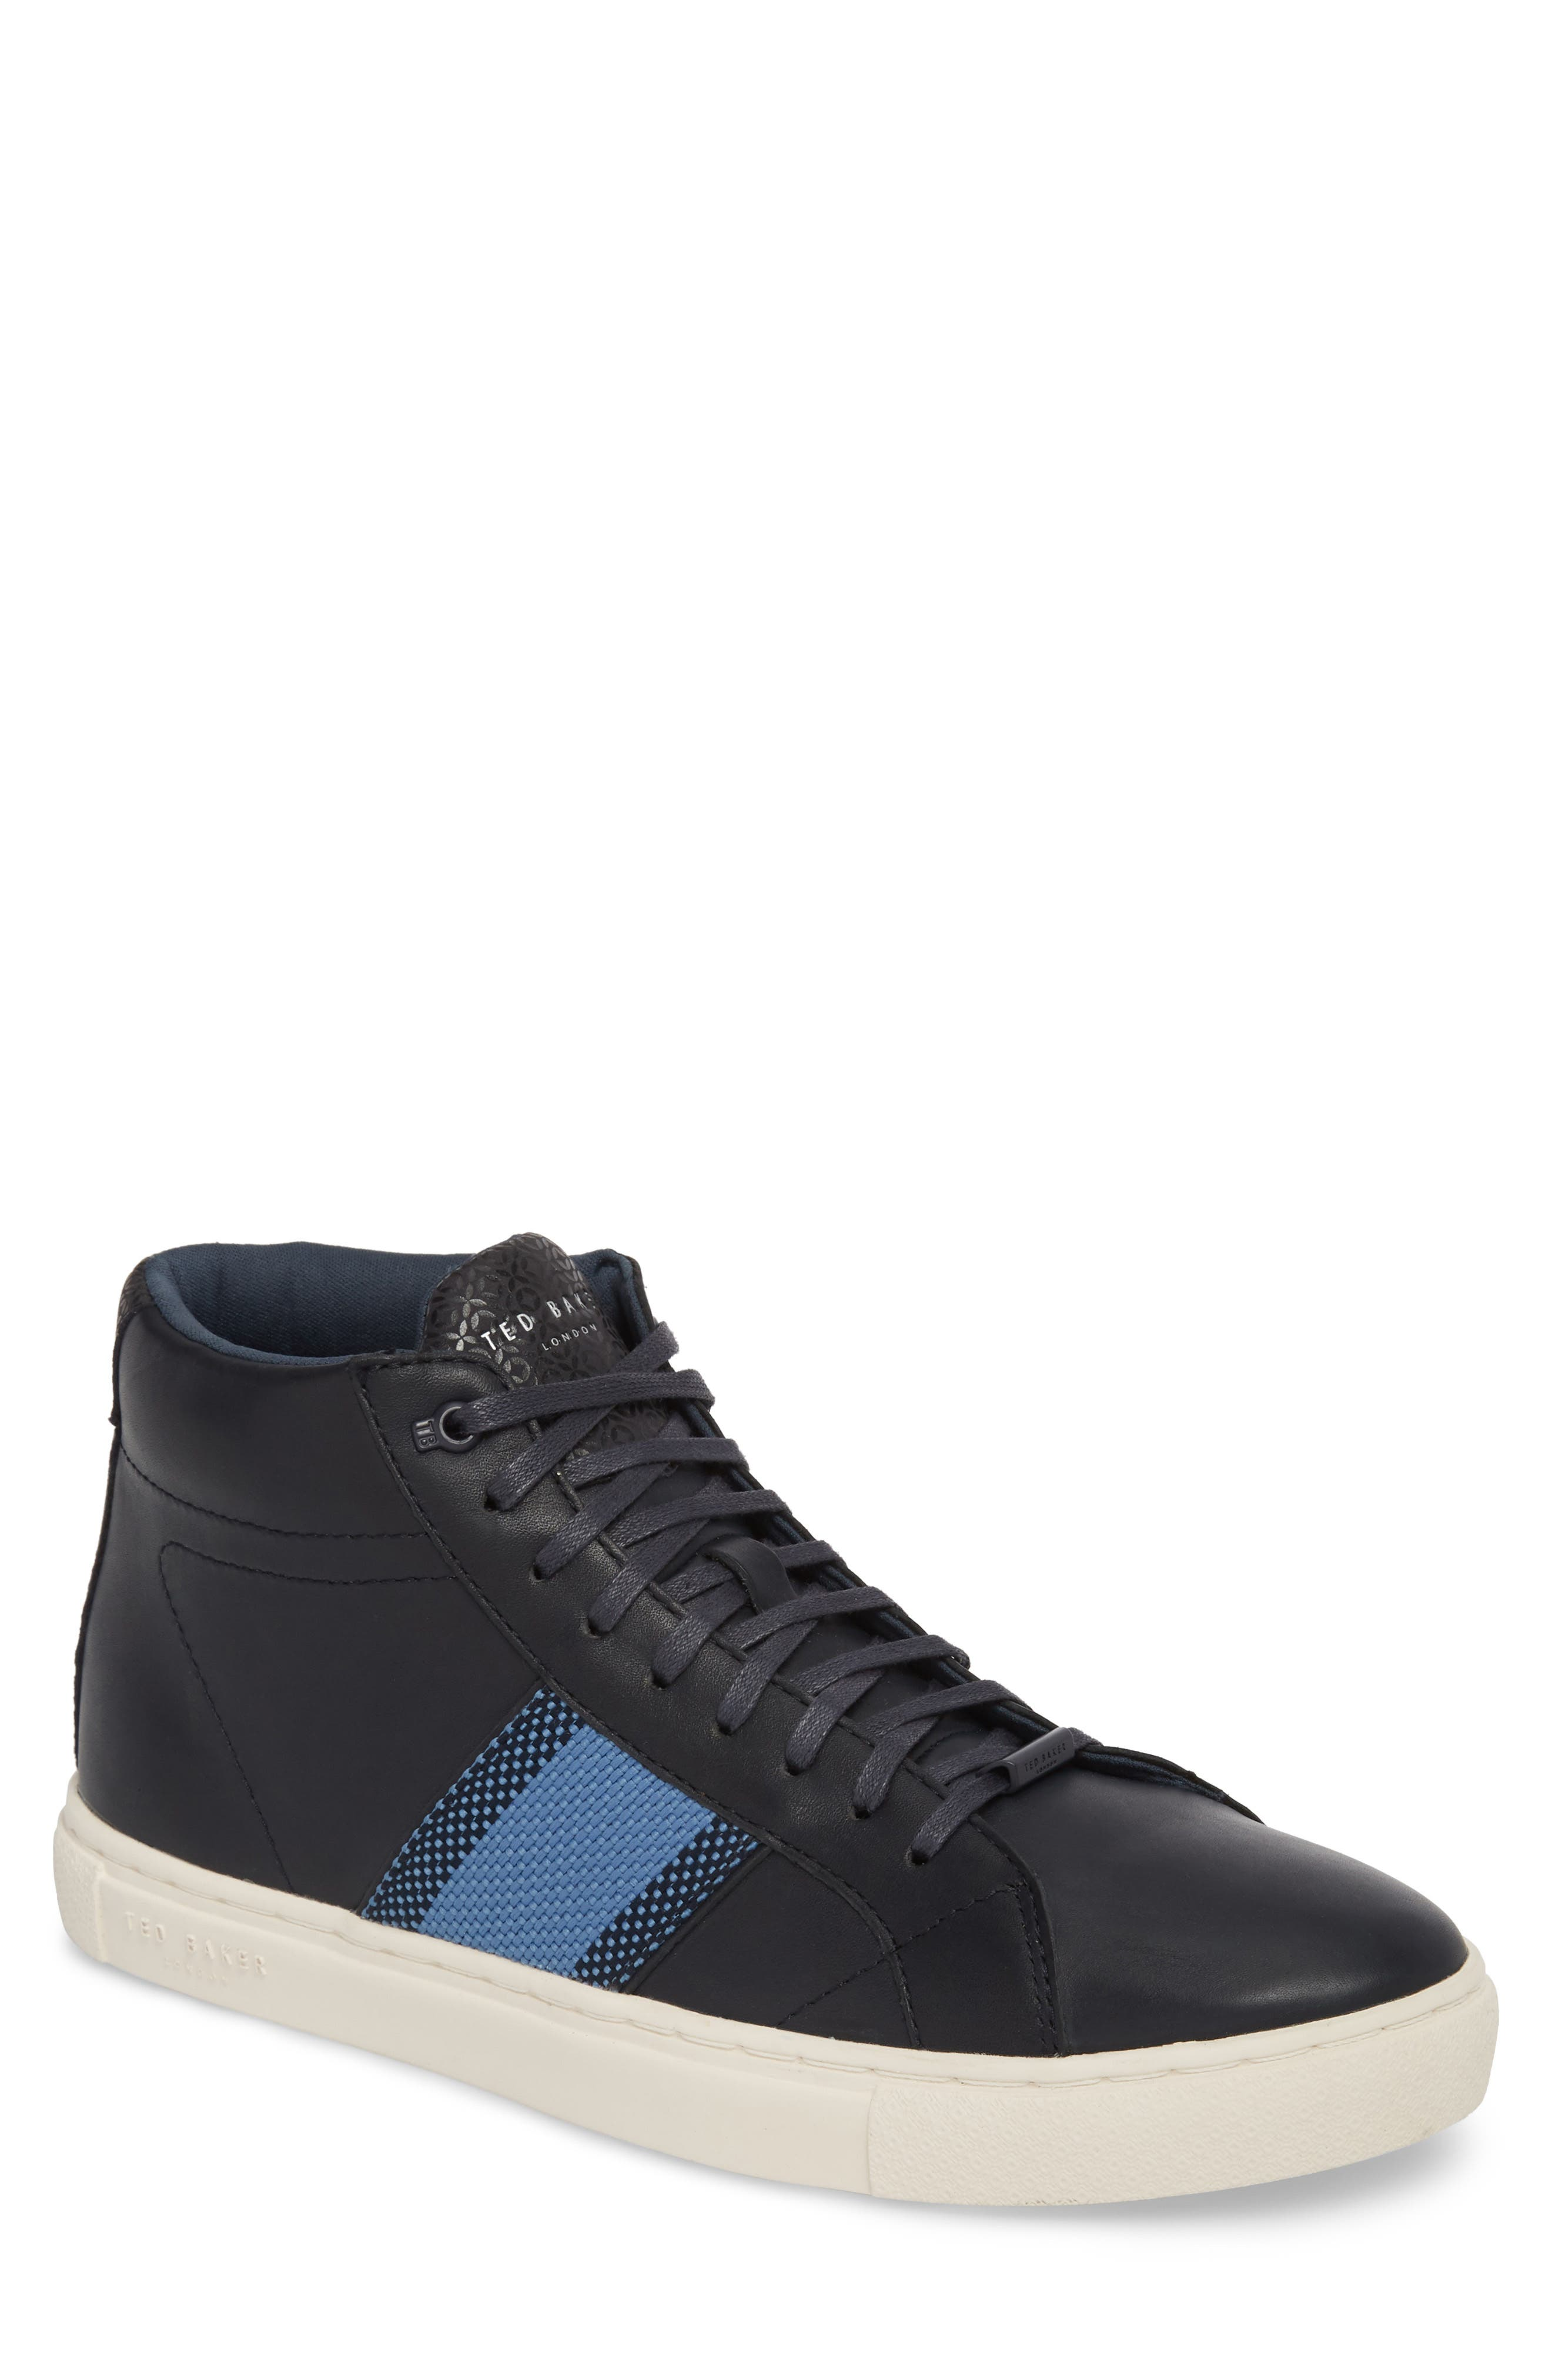 Cruuw High Top Sneaker,                             Main thumbnail 1, color,                             Dark Blue Leather